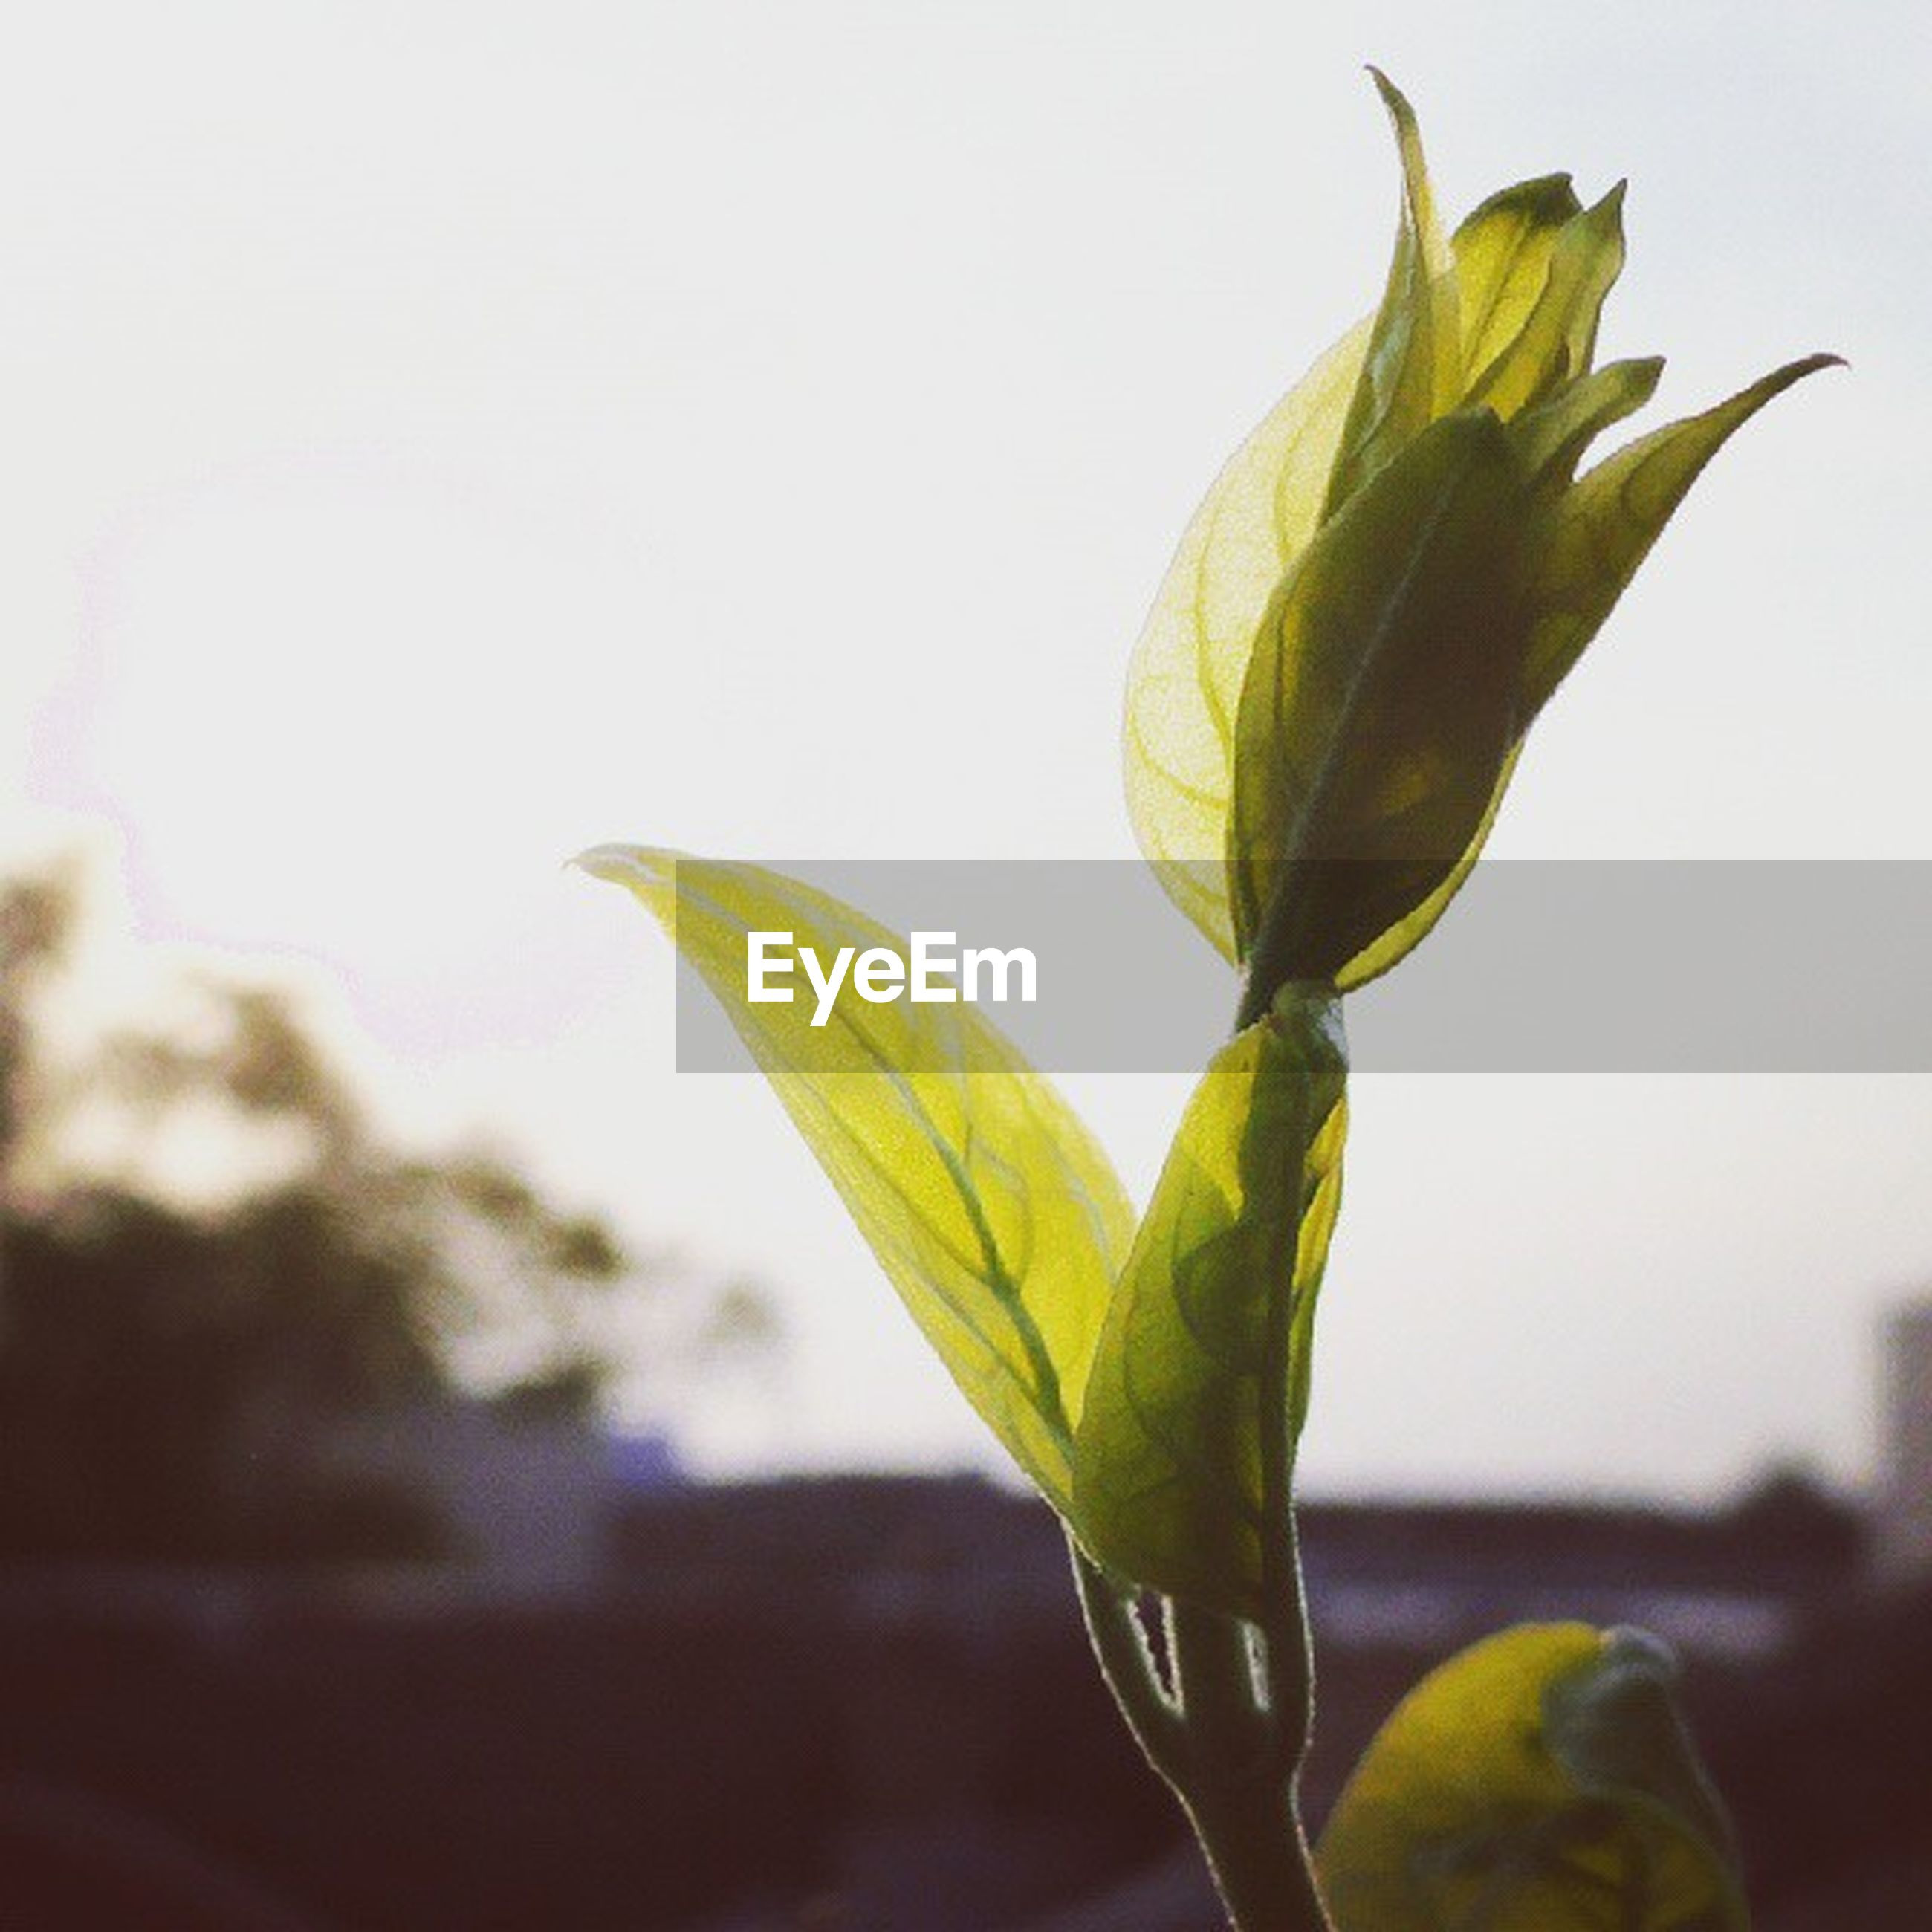 flower, freshness, fragility, growth, petal, stem, leaf, close-up, flower head, plant, bud, beauty in nature, nature, focus on foreground, yellow, new life, botany, tulip, studio shot, single flower